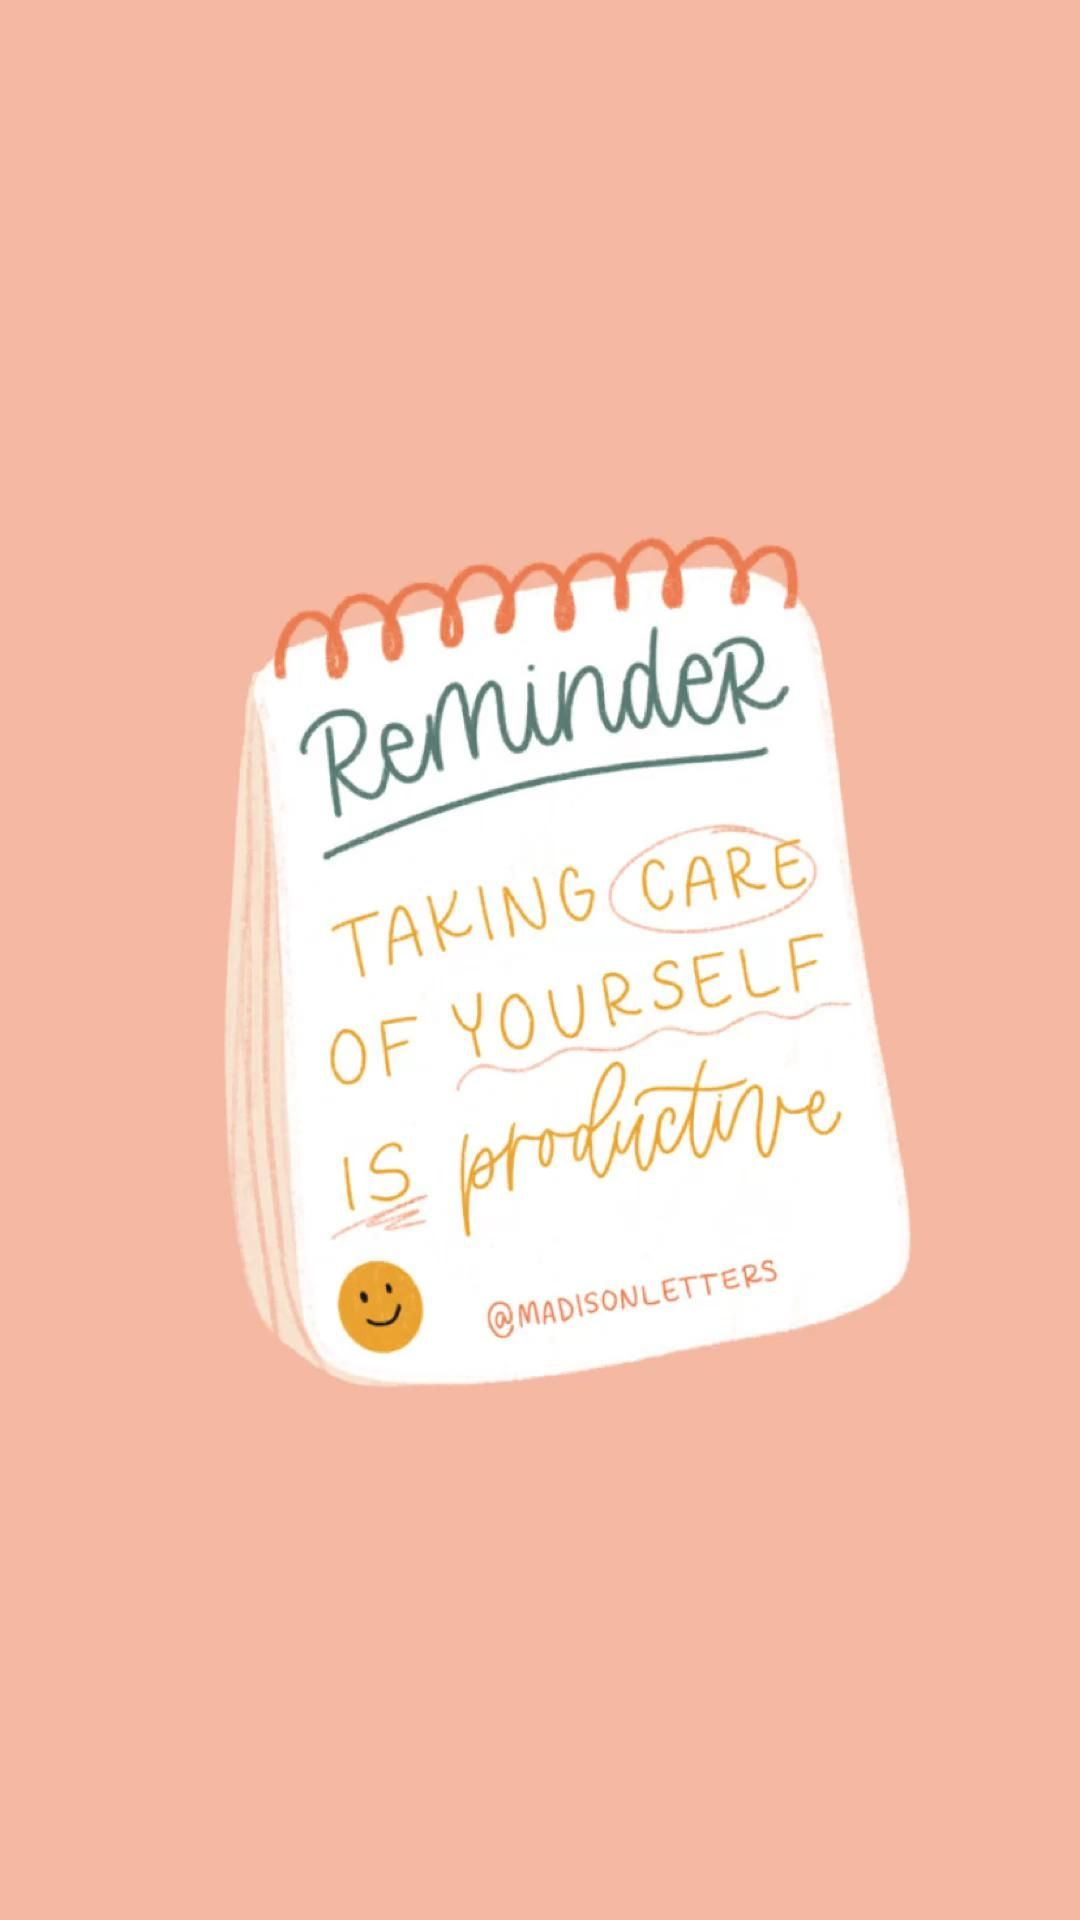 taking care of yourself is productive ☺️   @madisonletters